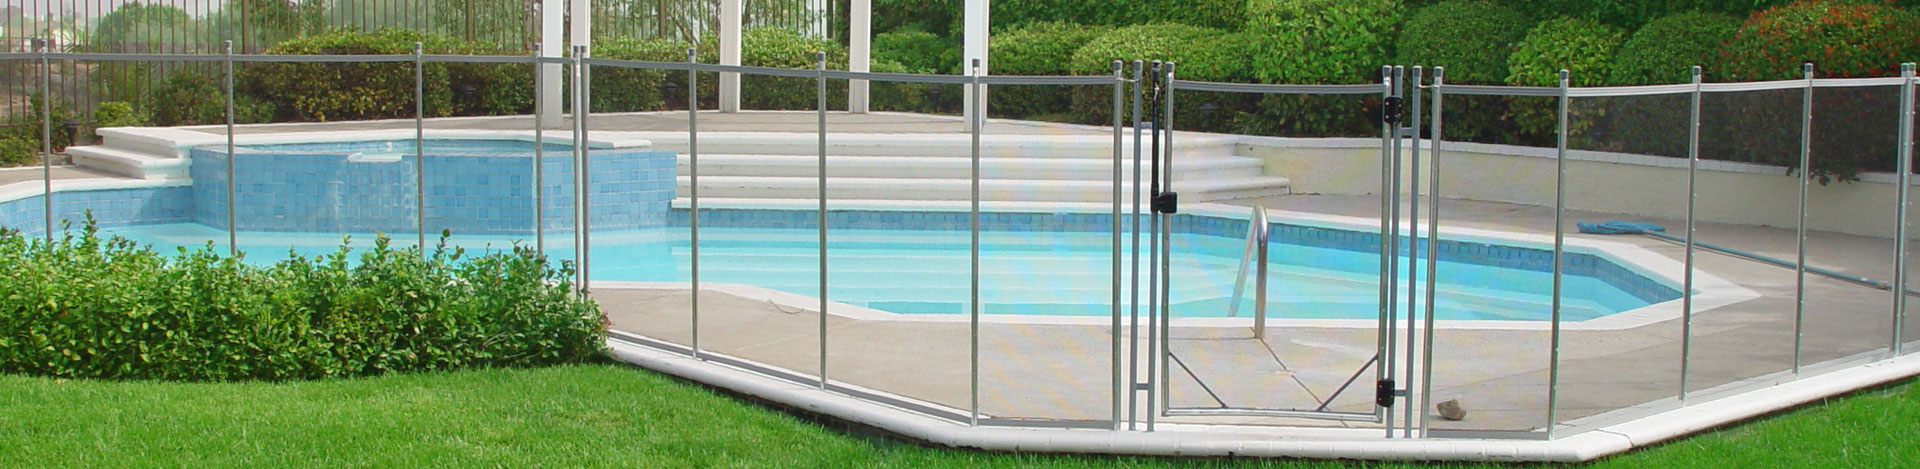 Pool Fence the safest and strongest pool fence. #1 swimming pool safety